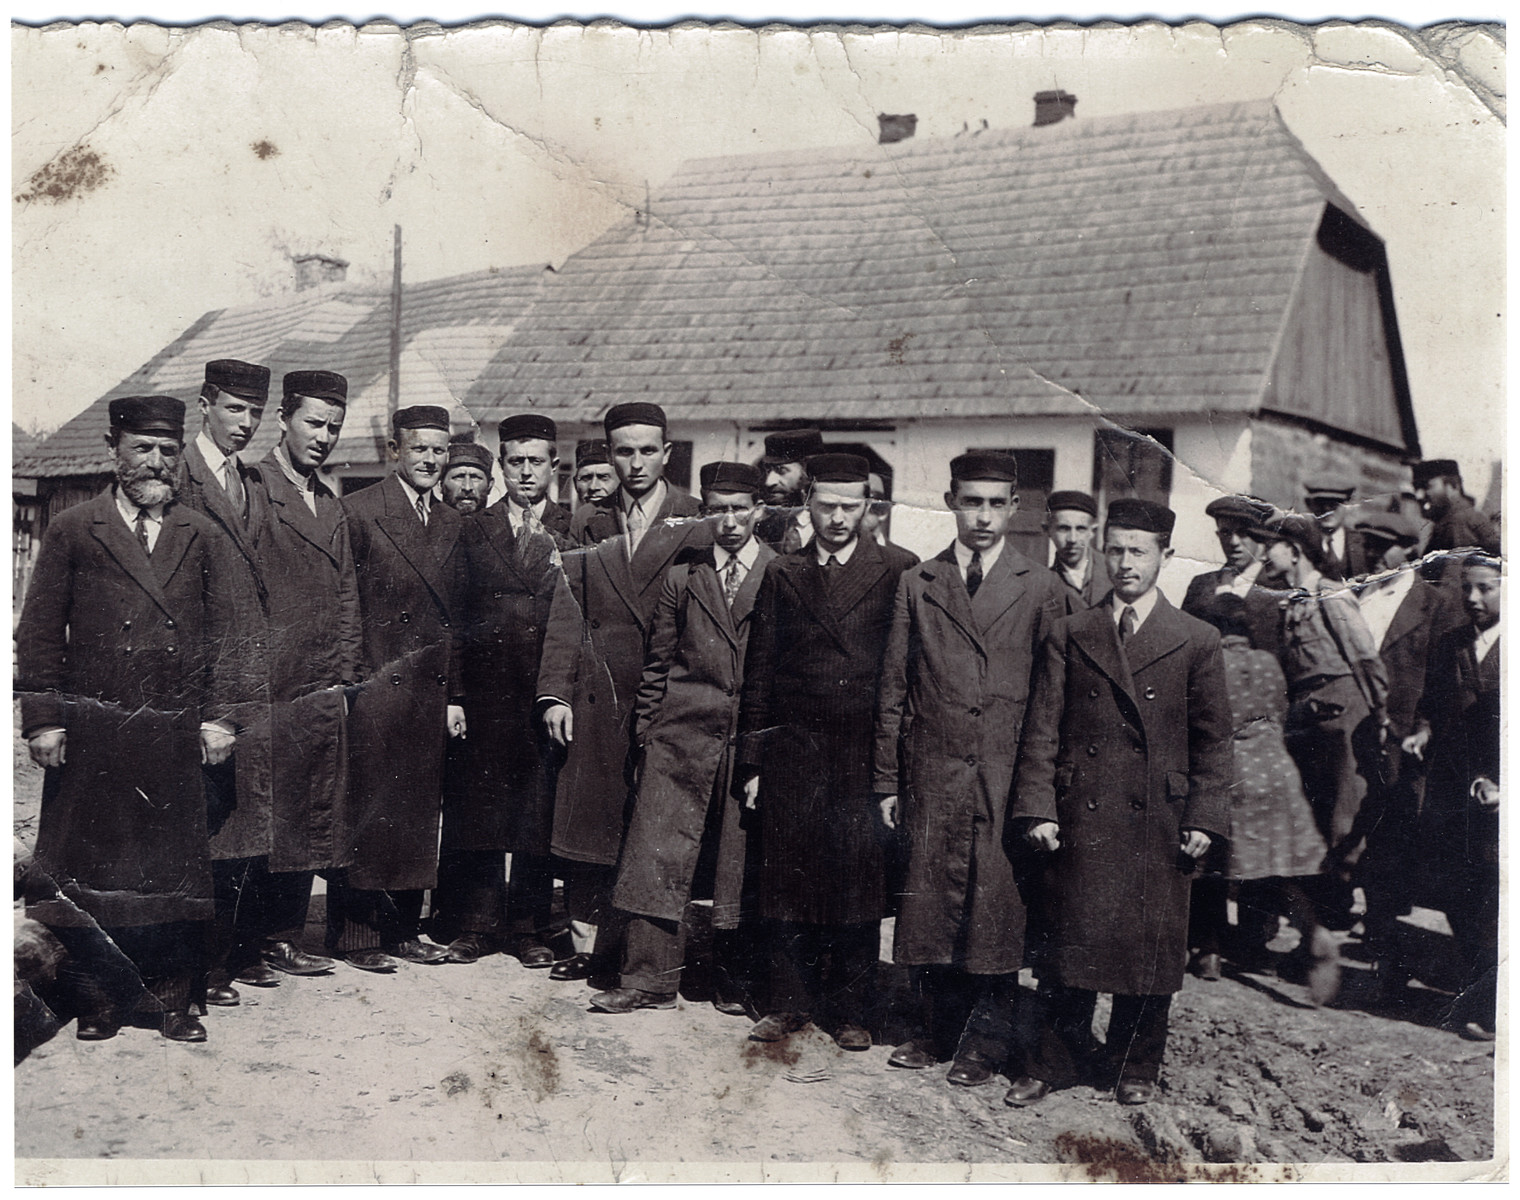 Group photograph of Chassidic Jews in the town of Wachok, Poland.    Among those pictured are Mendel Lustman (far right) and his brother Pinchas Lustman (fourth from the right).